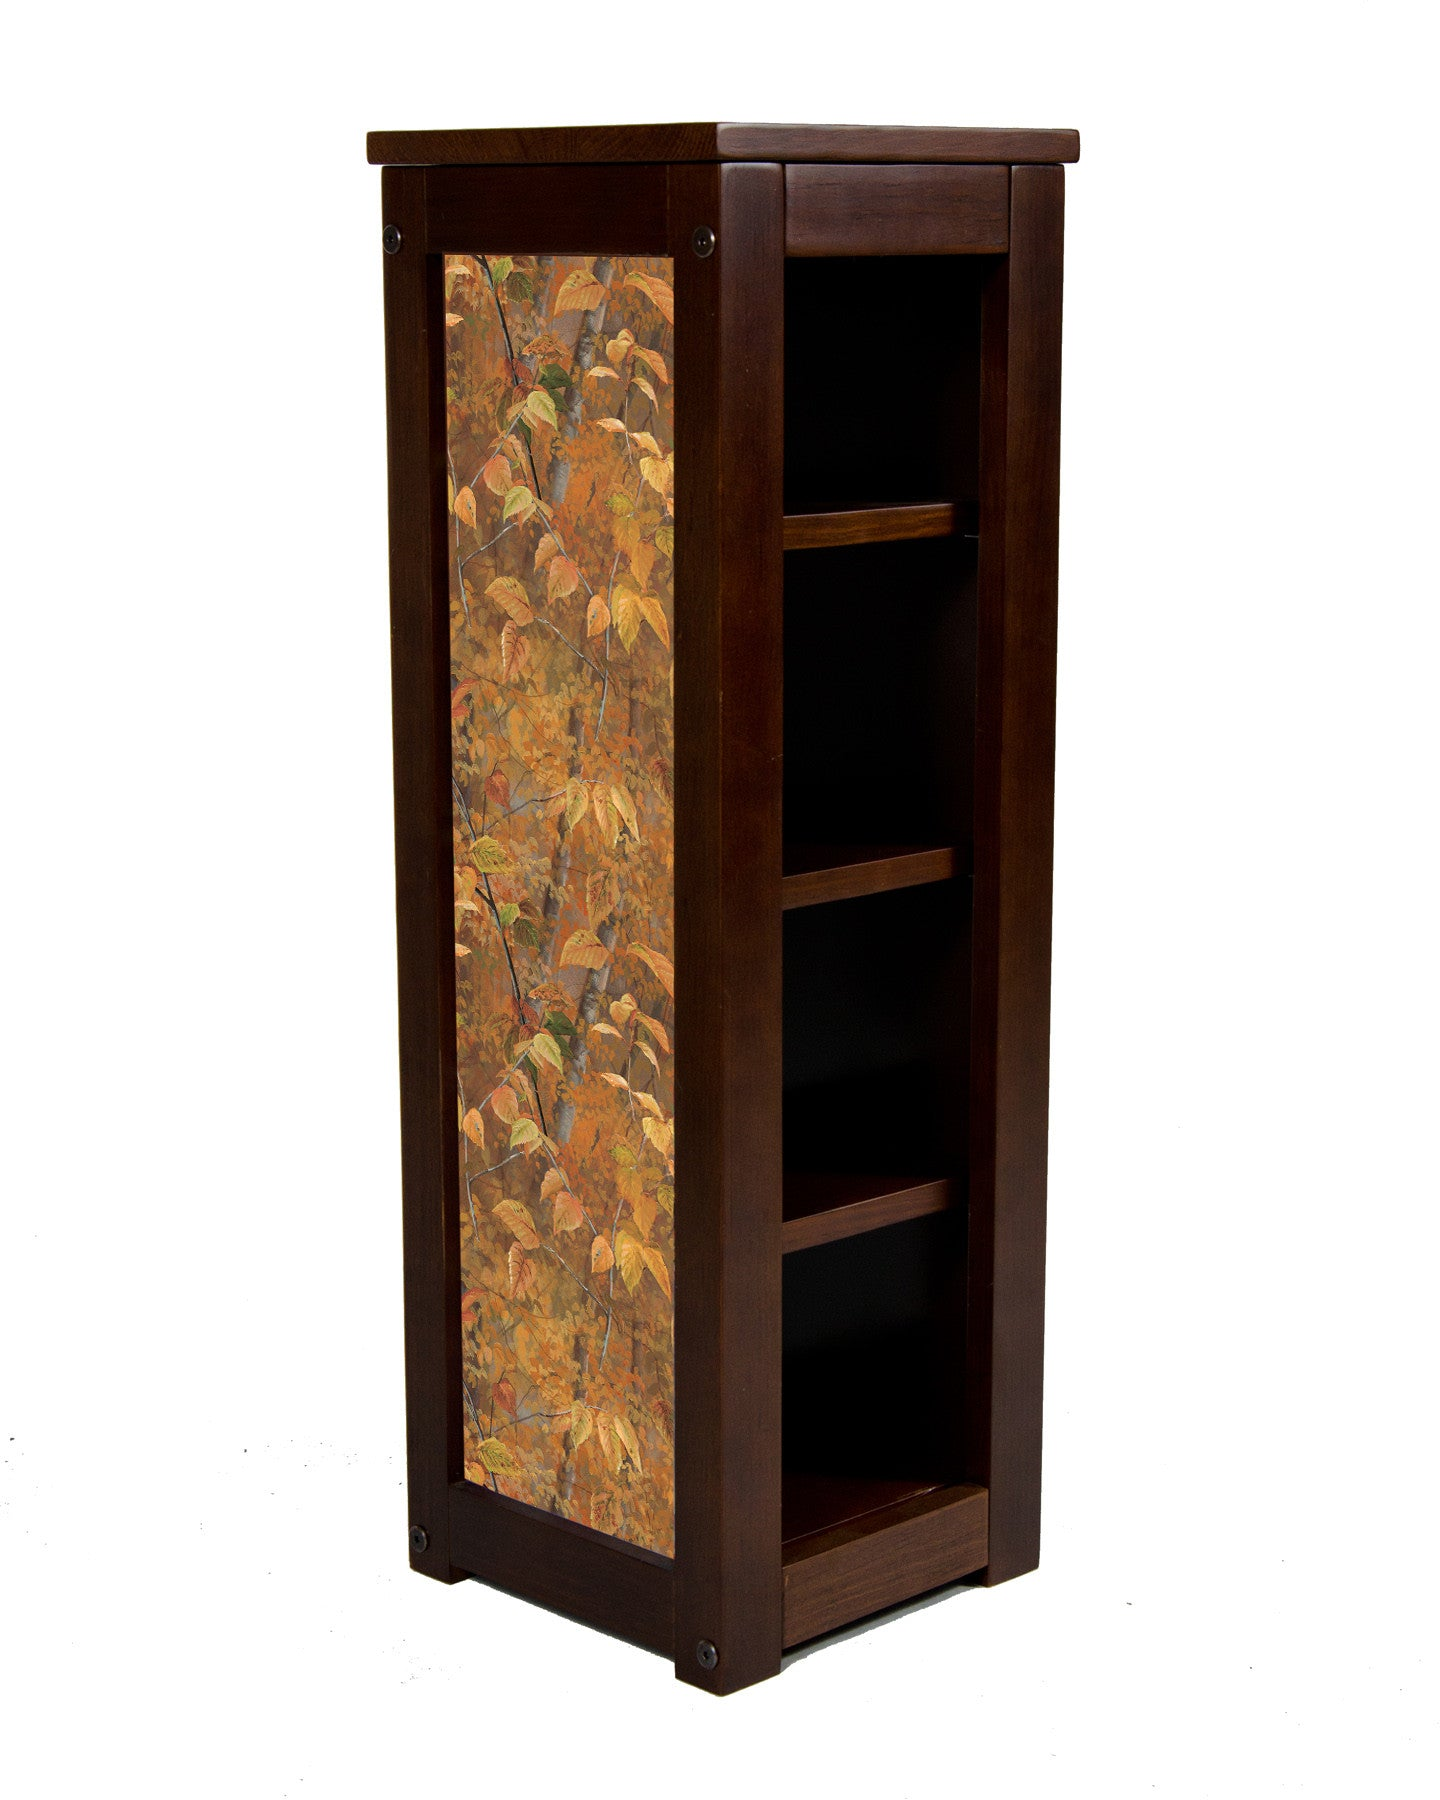 Pedestal Stand-Shades of Autumn Leaves-Rosemary Millette